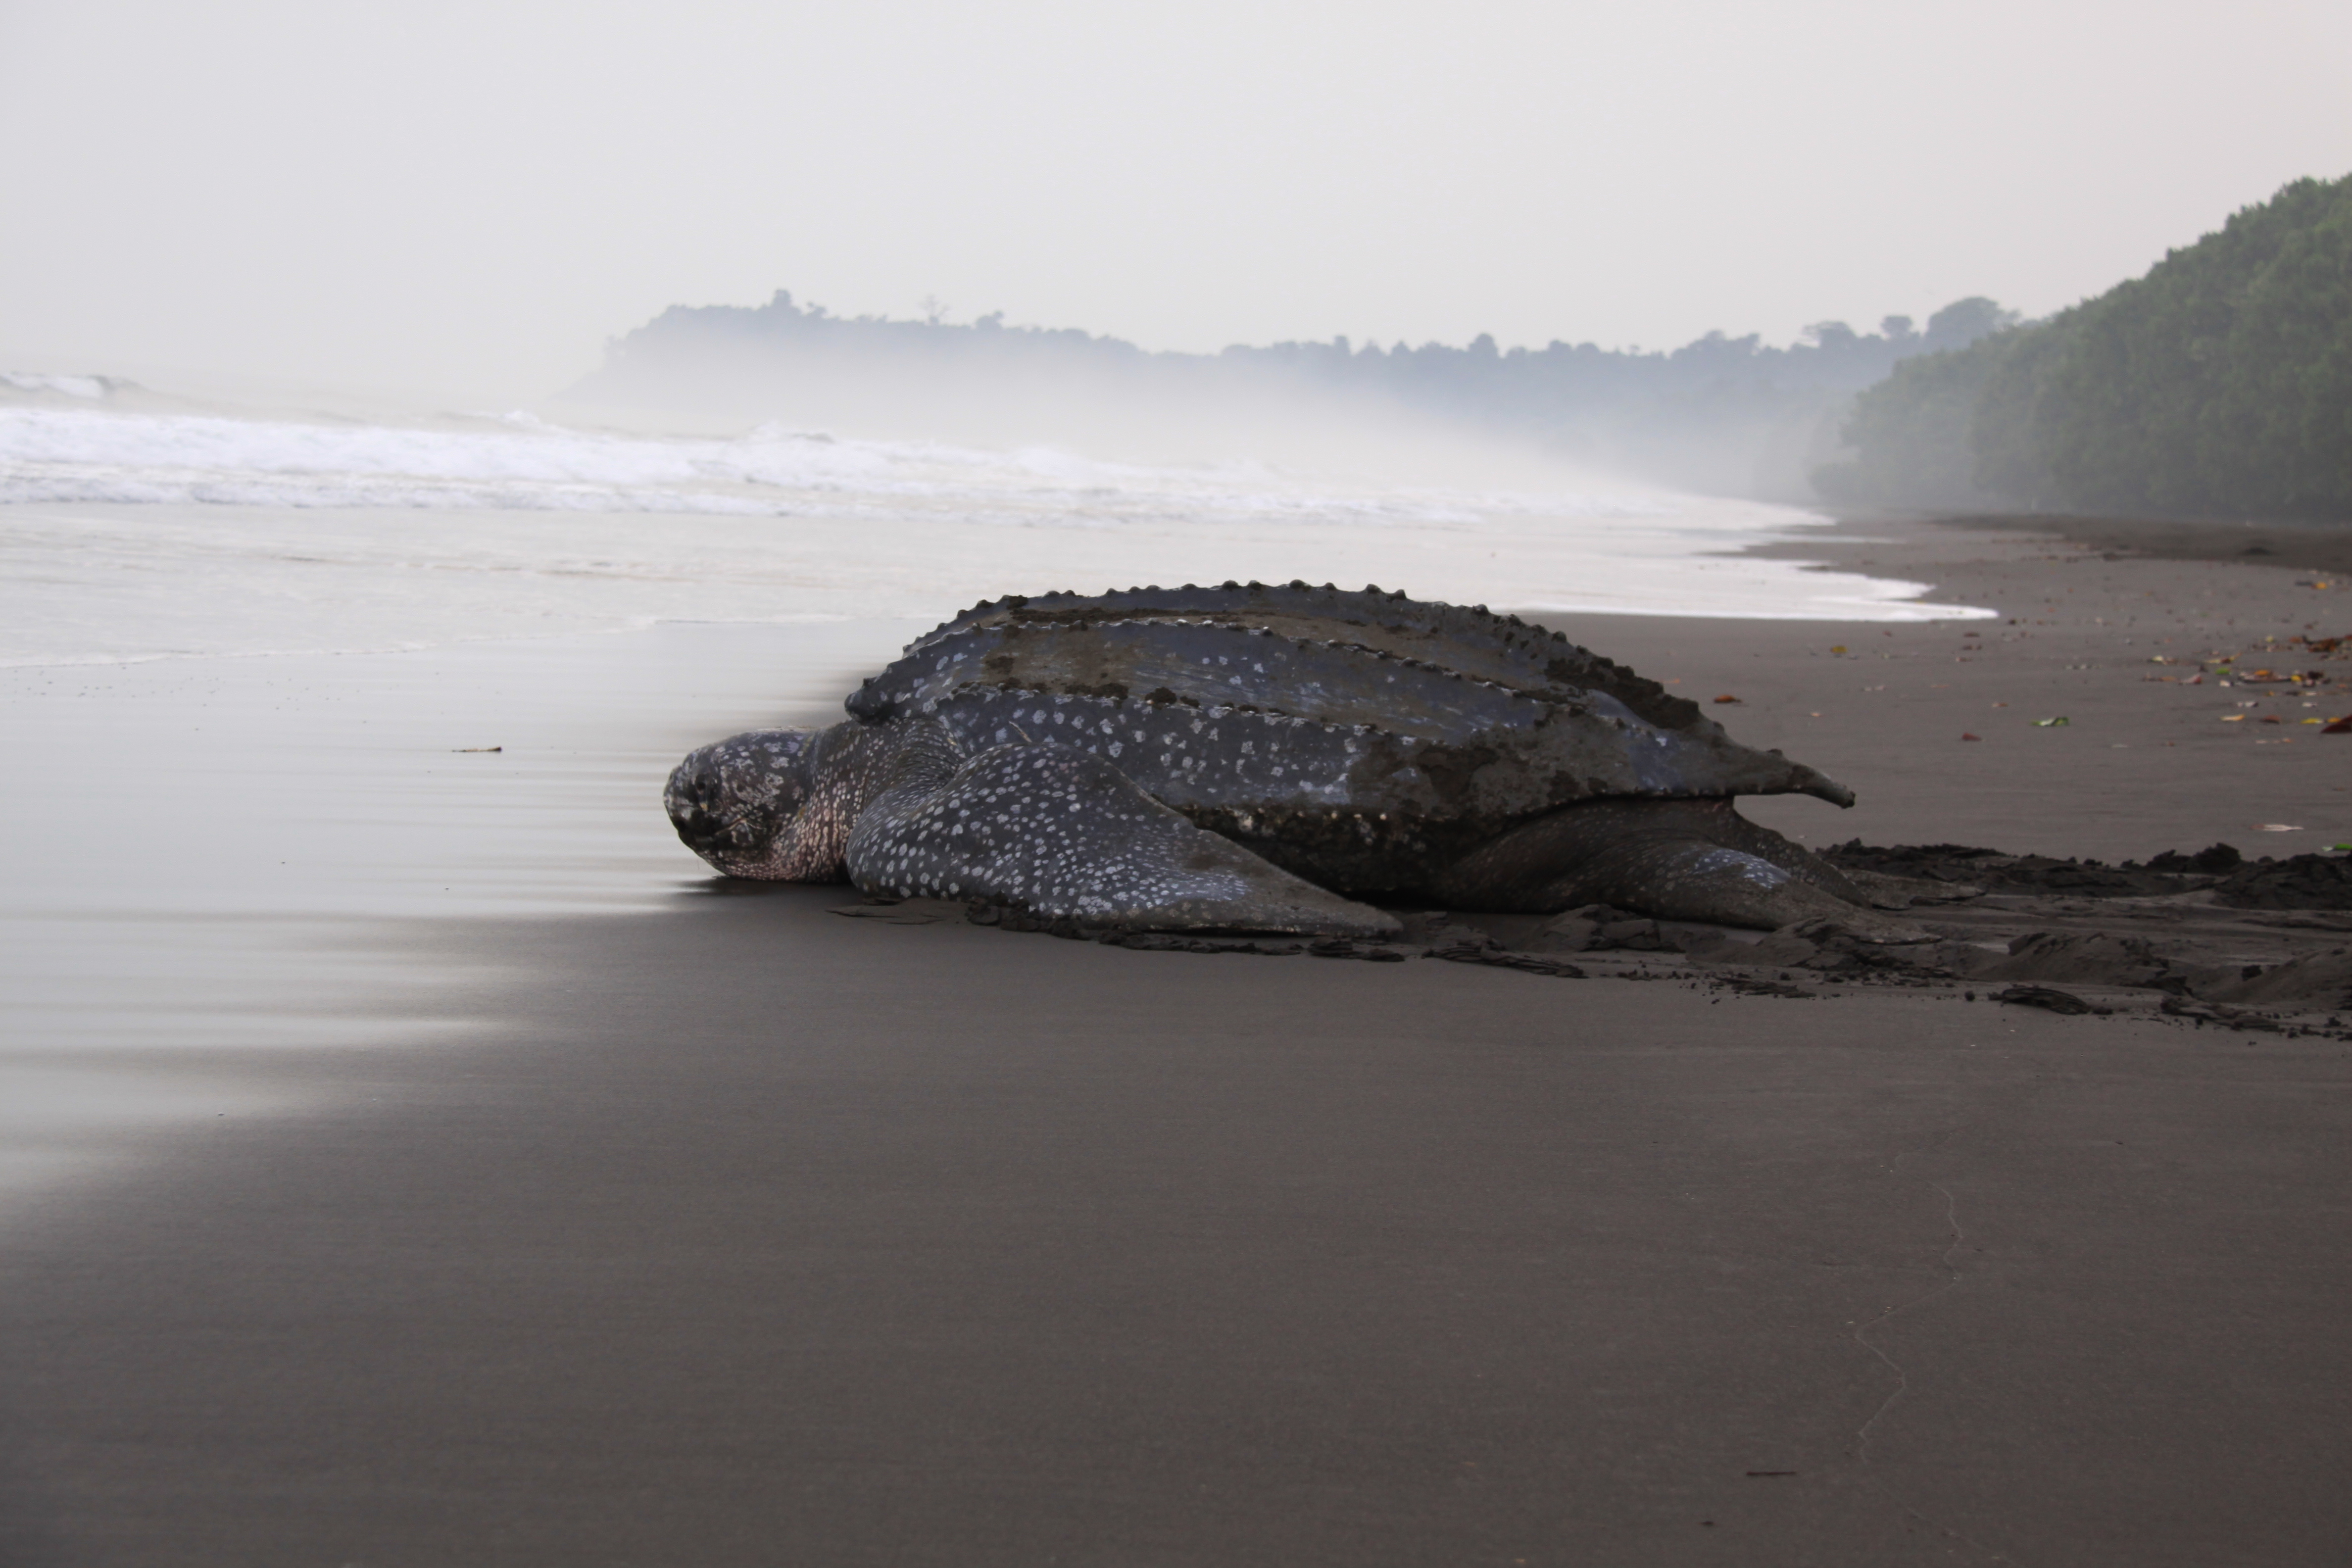 A leatherback sea turtle lays on the wet sandy beach in Bioko.